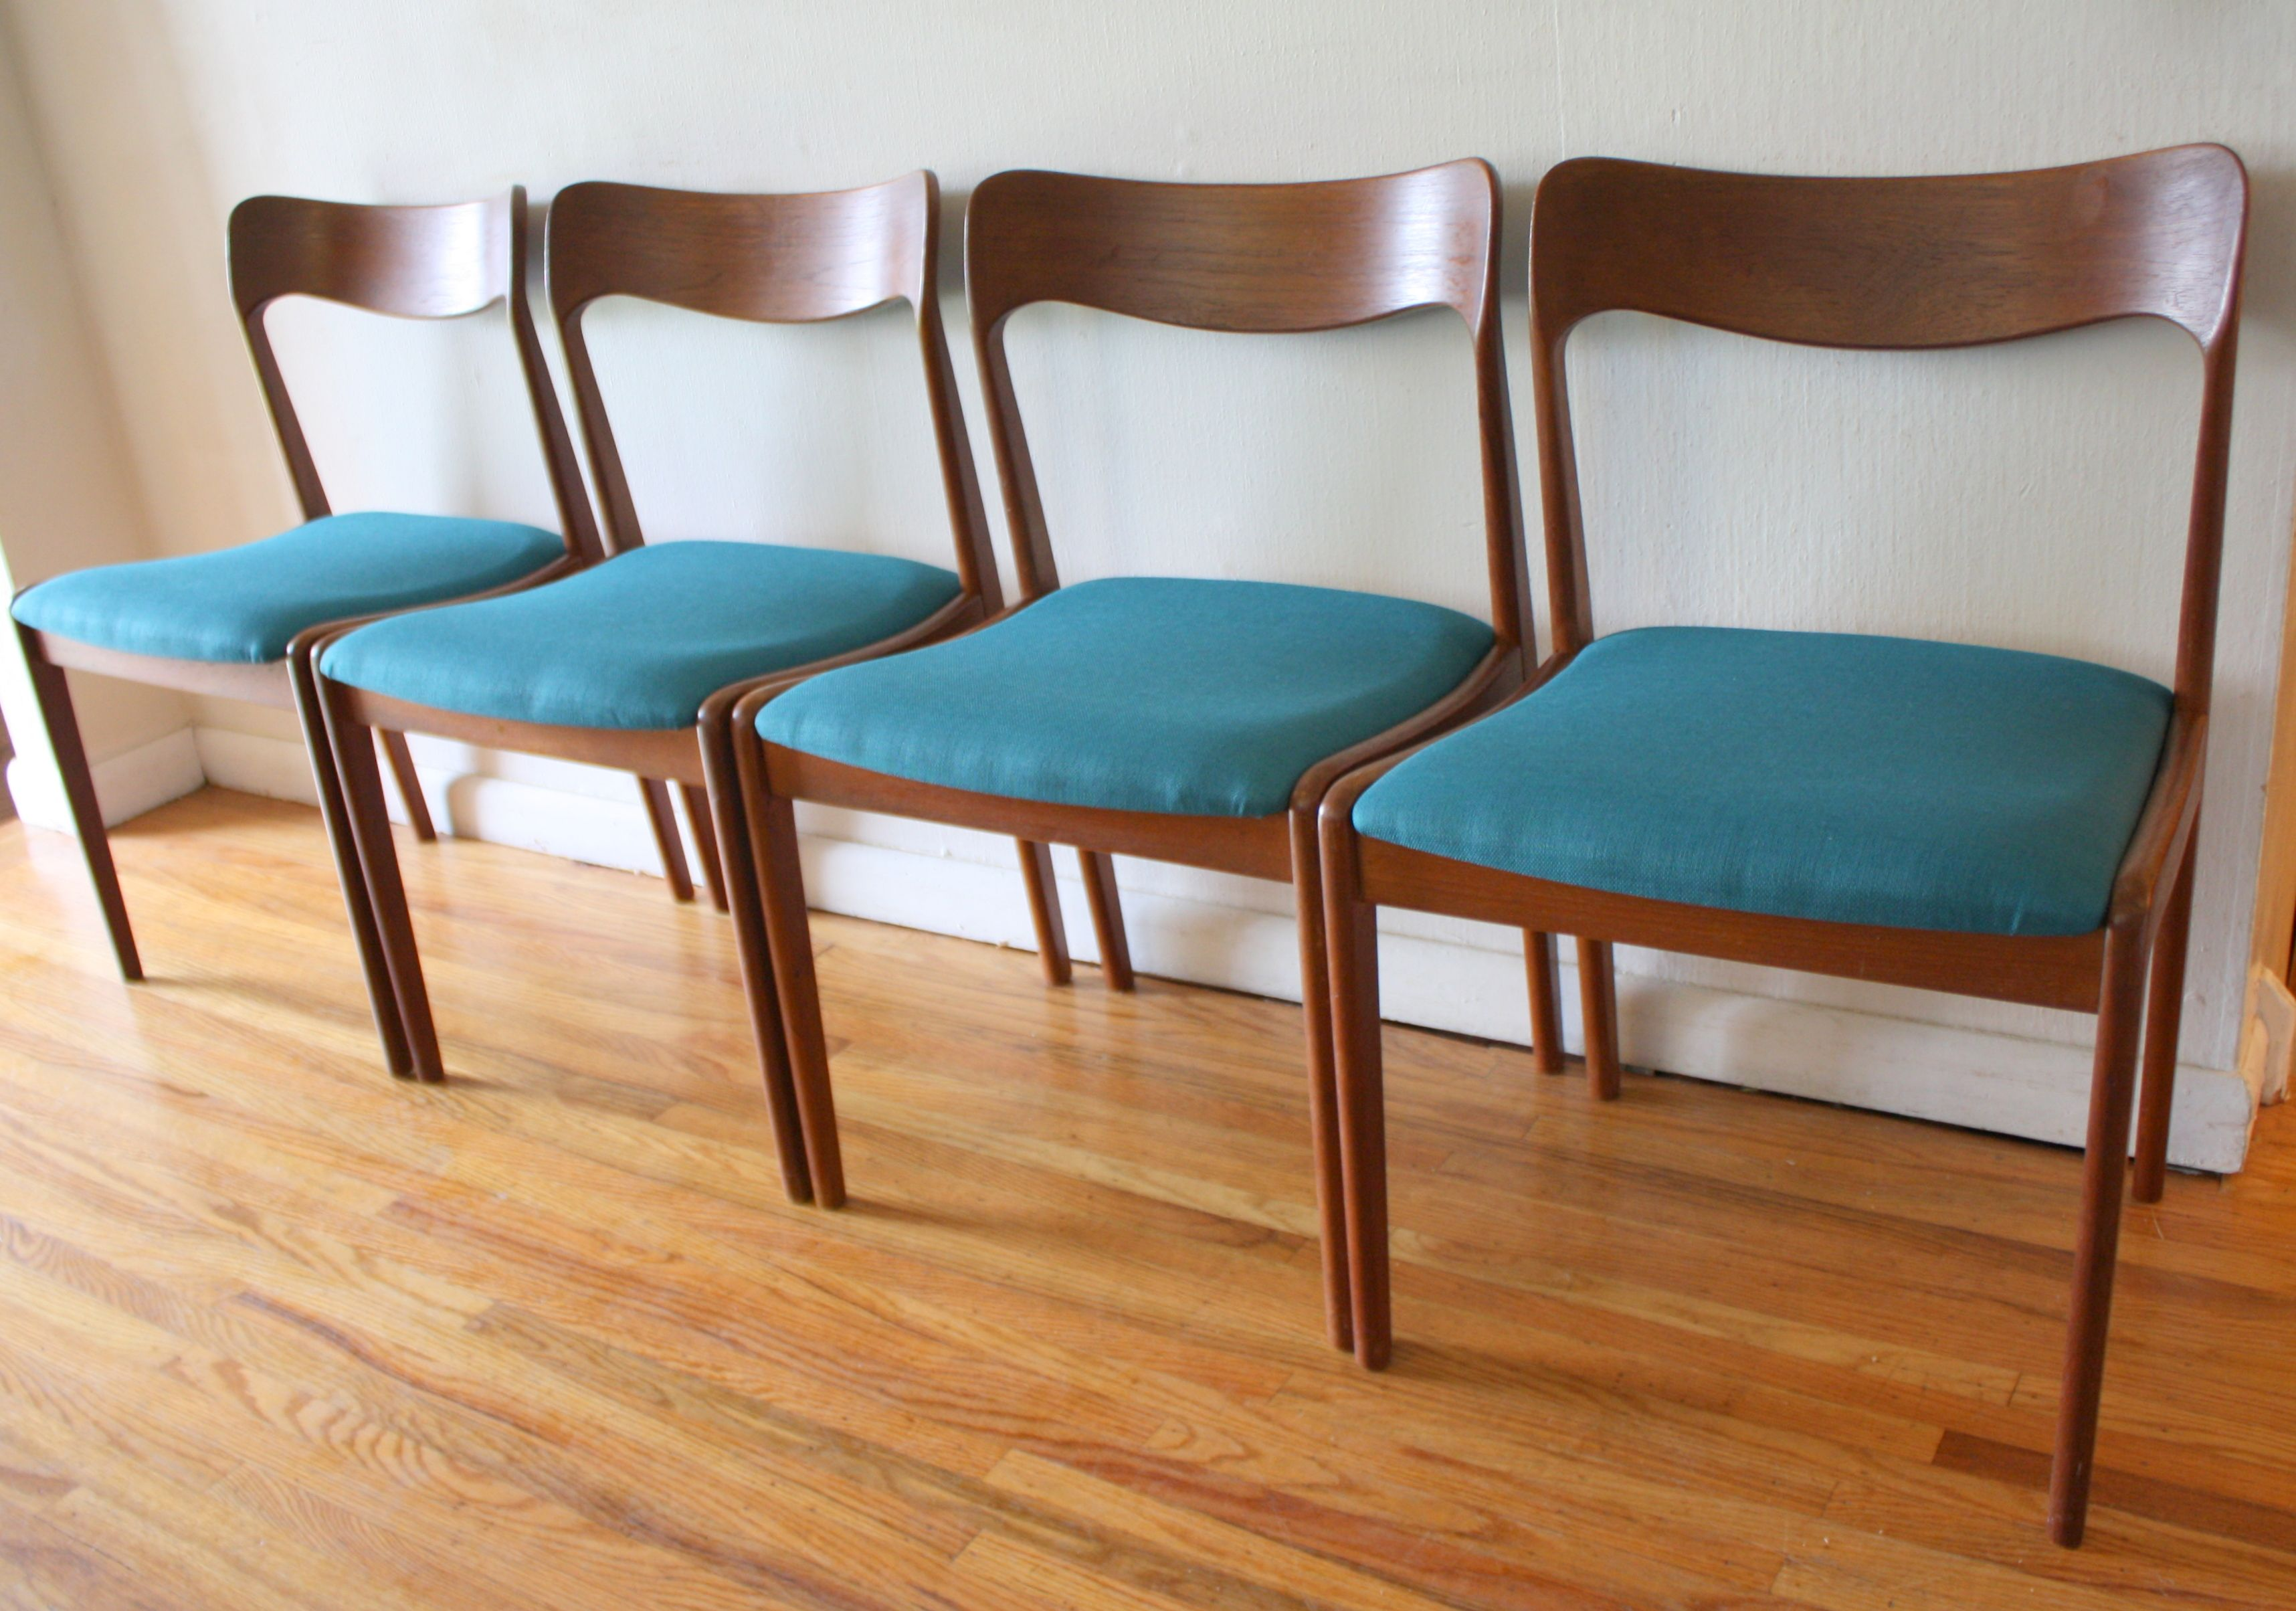 Mid century modern Danish teak arm chair by KS Mobler recovered